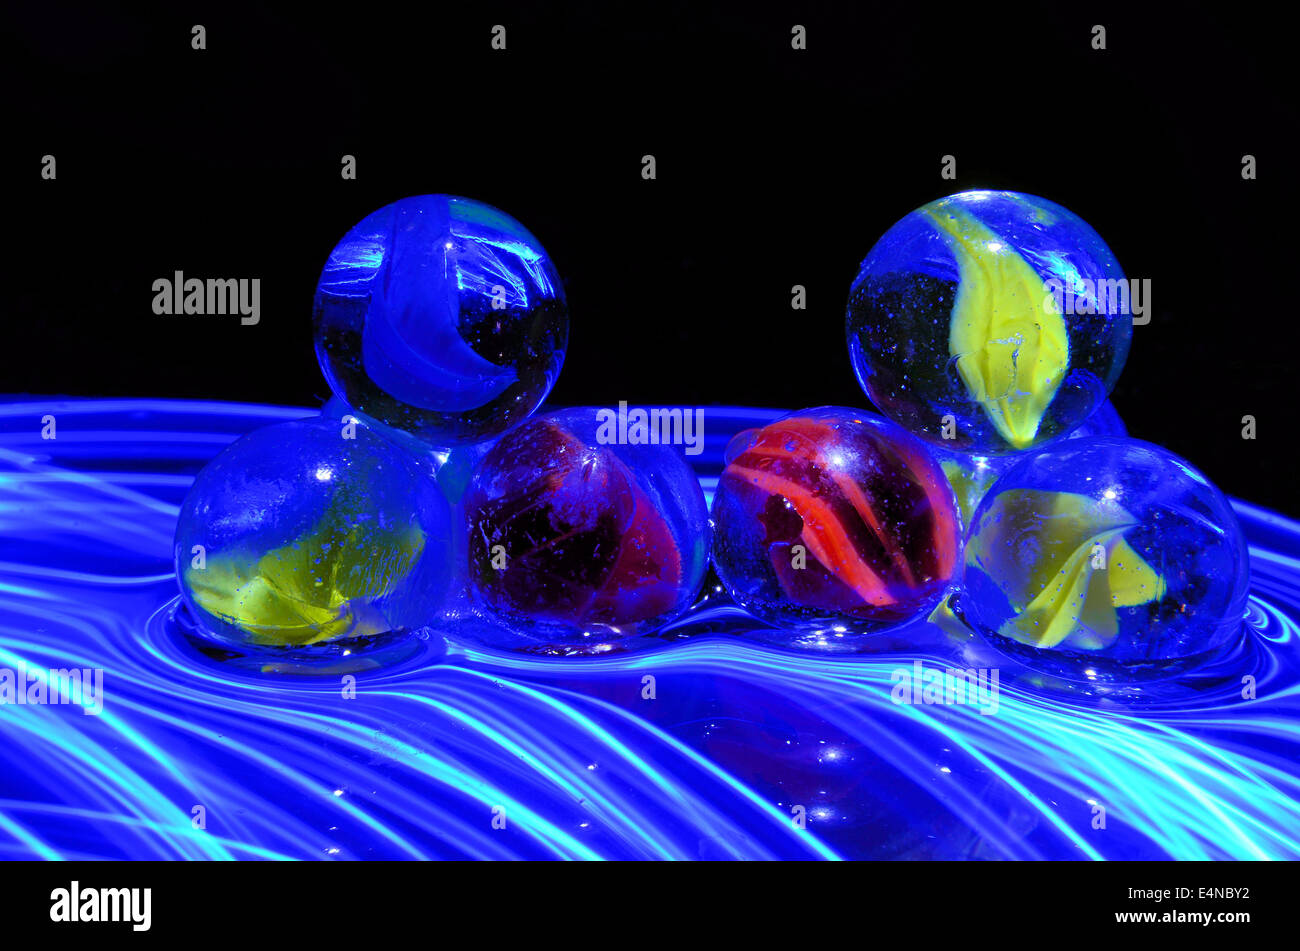 colored  marbles with different lighting effects - Stock Image